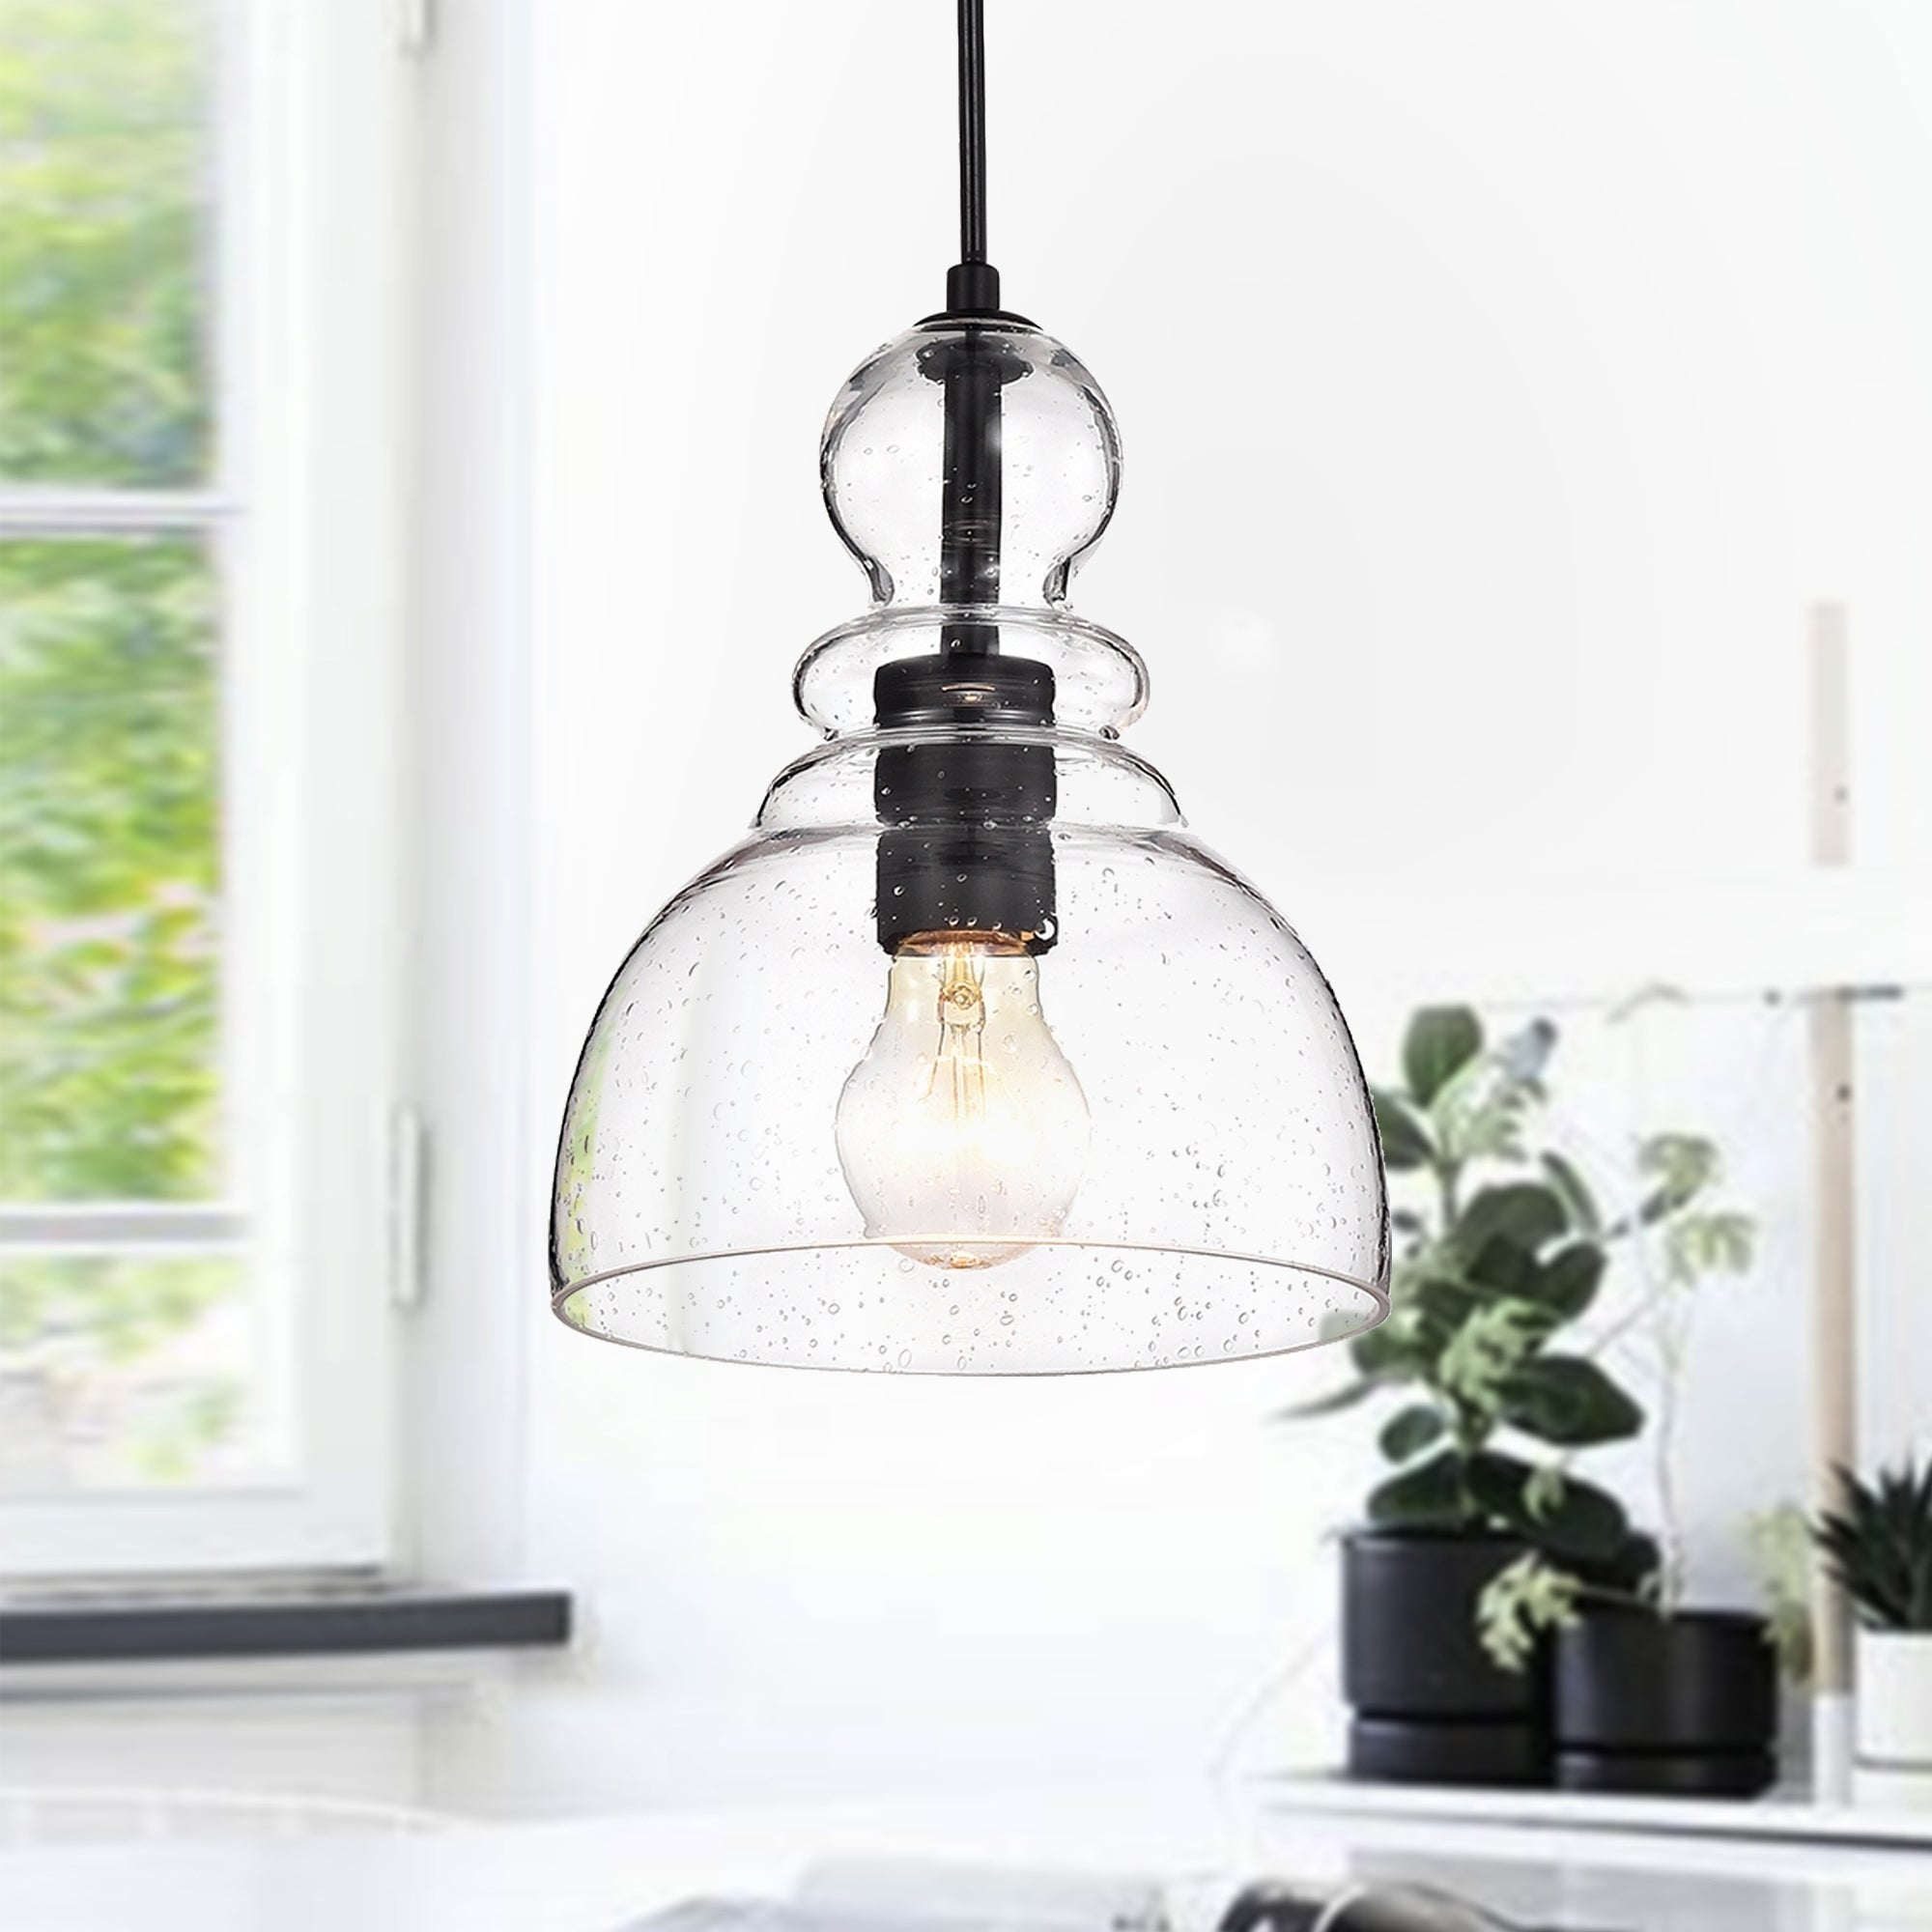 Nefelt Matte Black 1 Light Decanter Seeded Gl Pendant